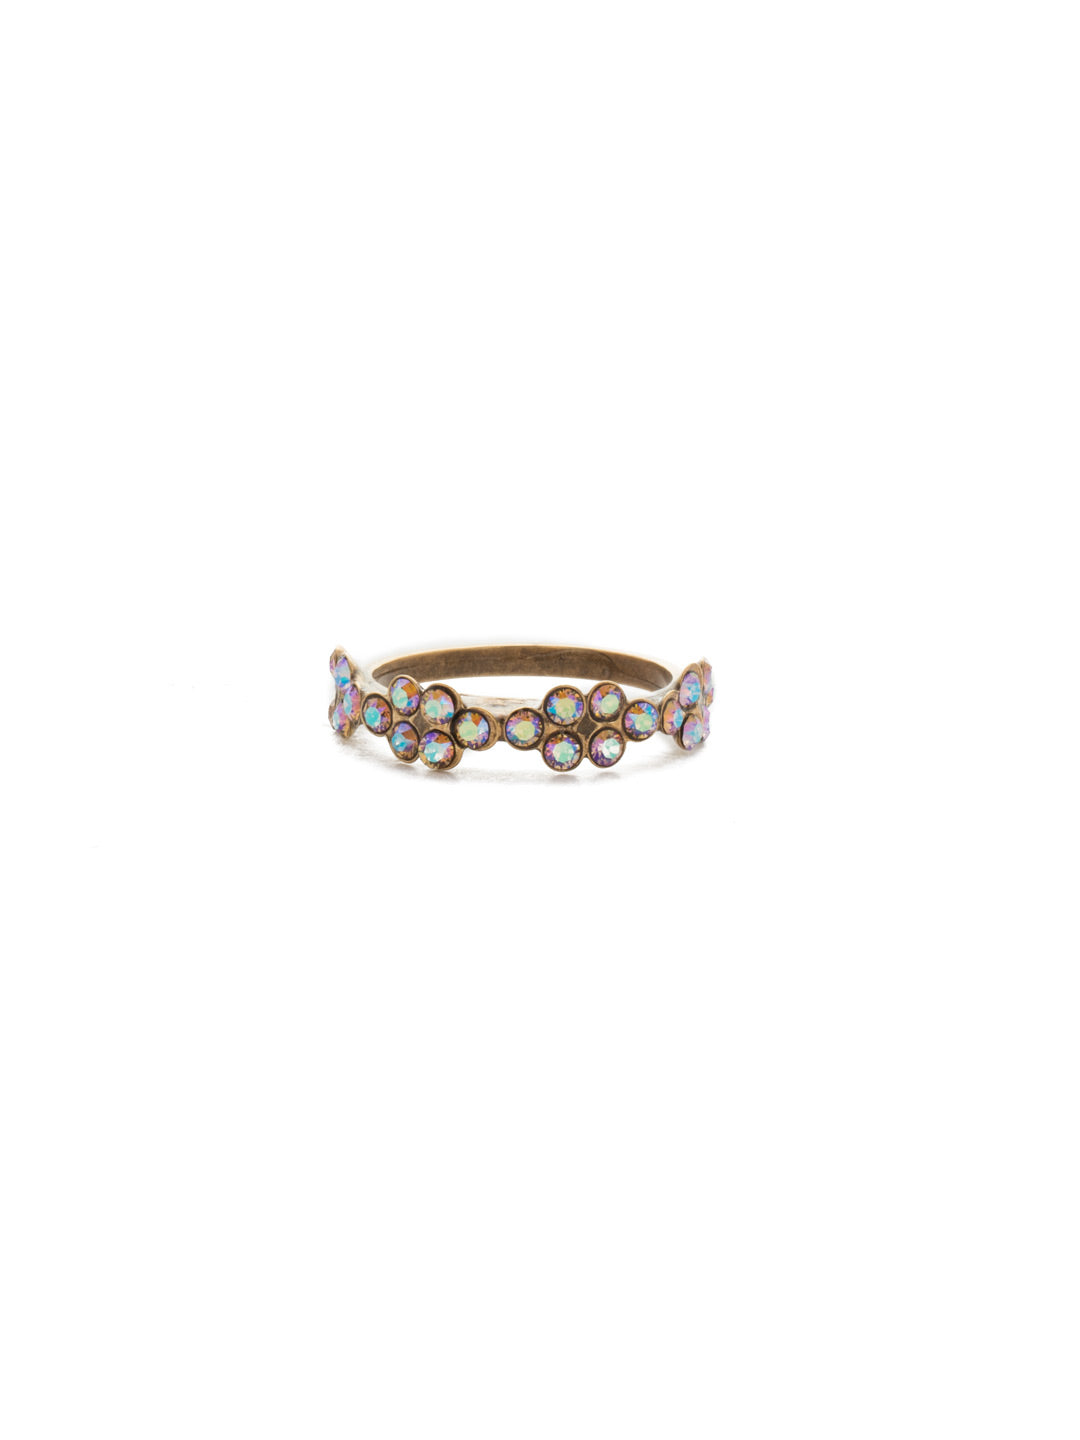 Lulu Band Ring - REK19AGROB